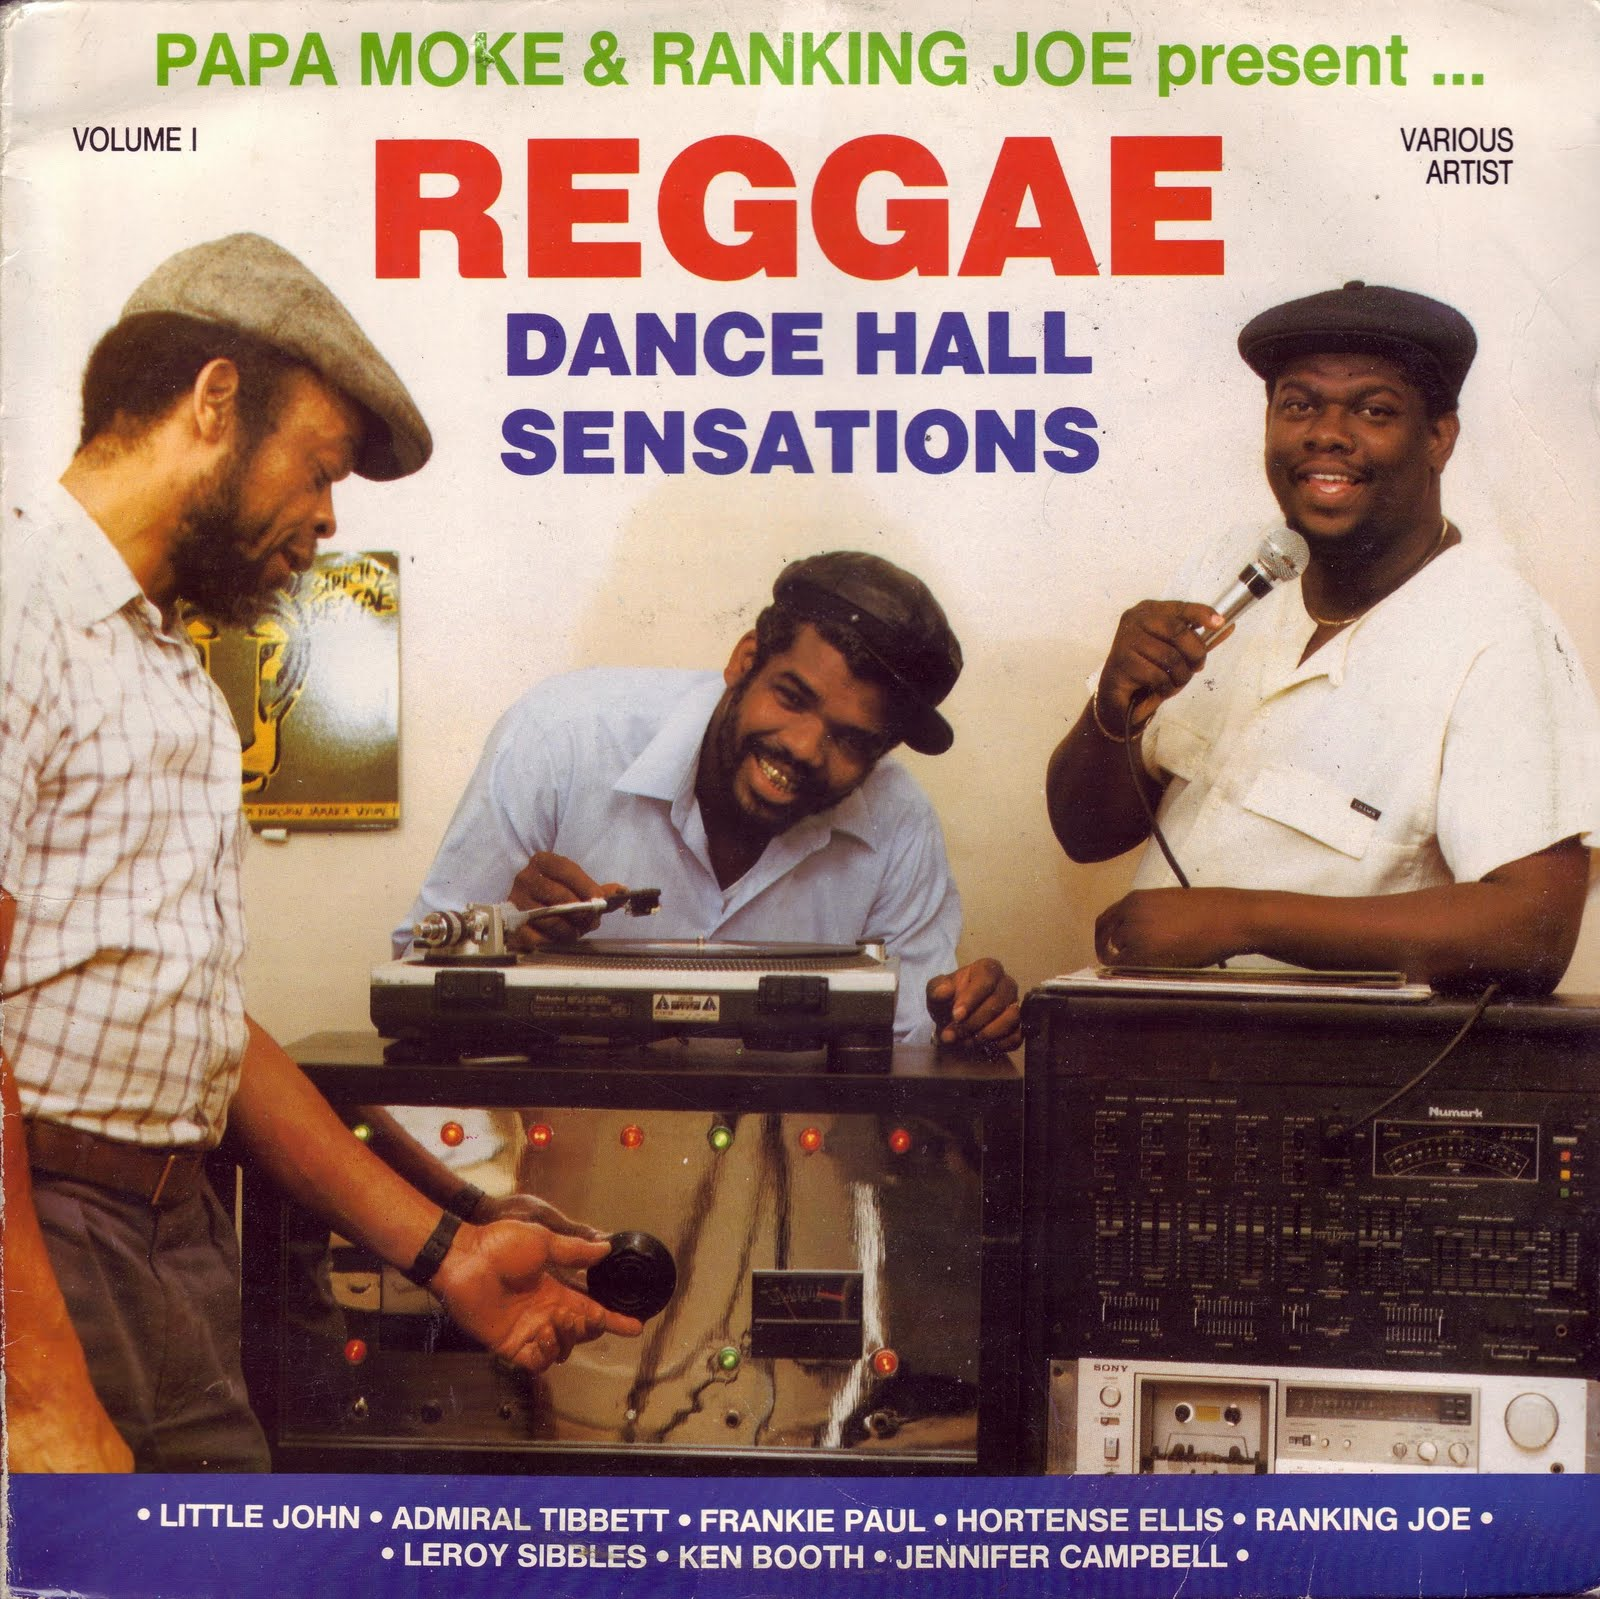 reggae dance hall sensations (papa moke lp)